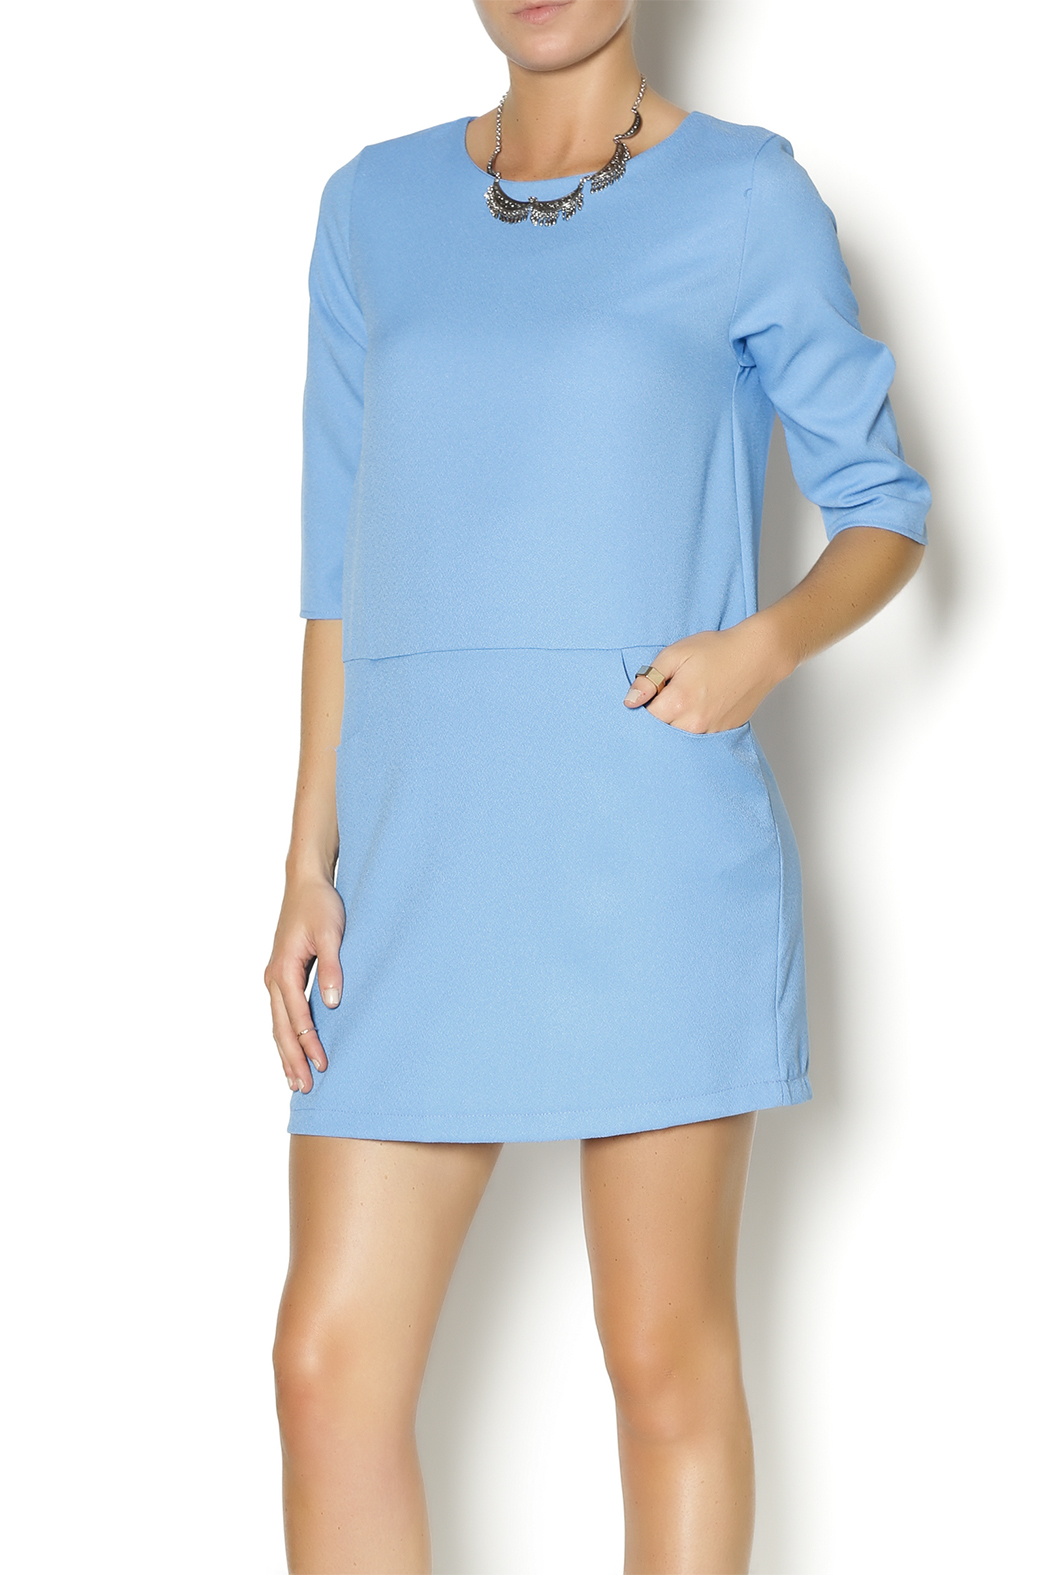 Everly Blue Shirt Dress - Main Image